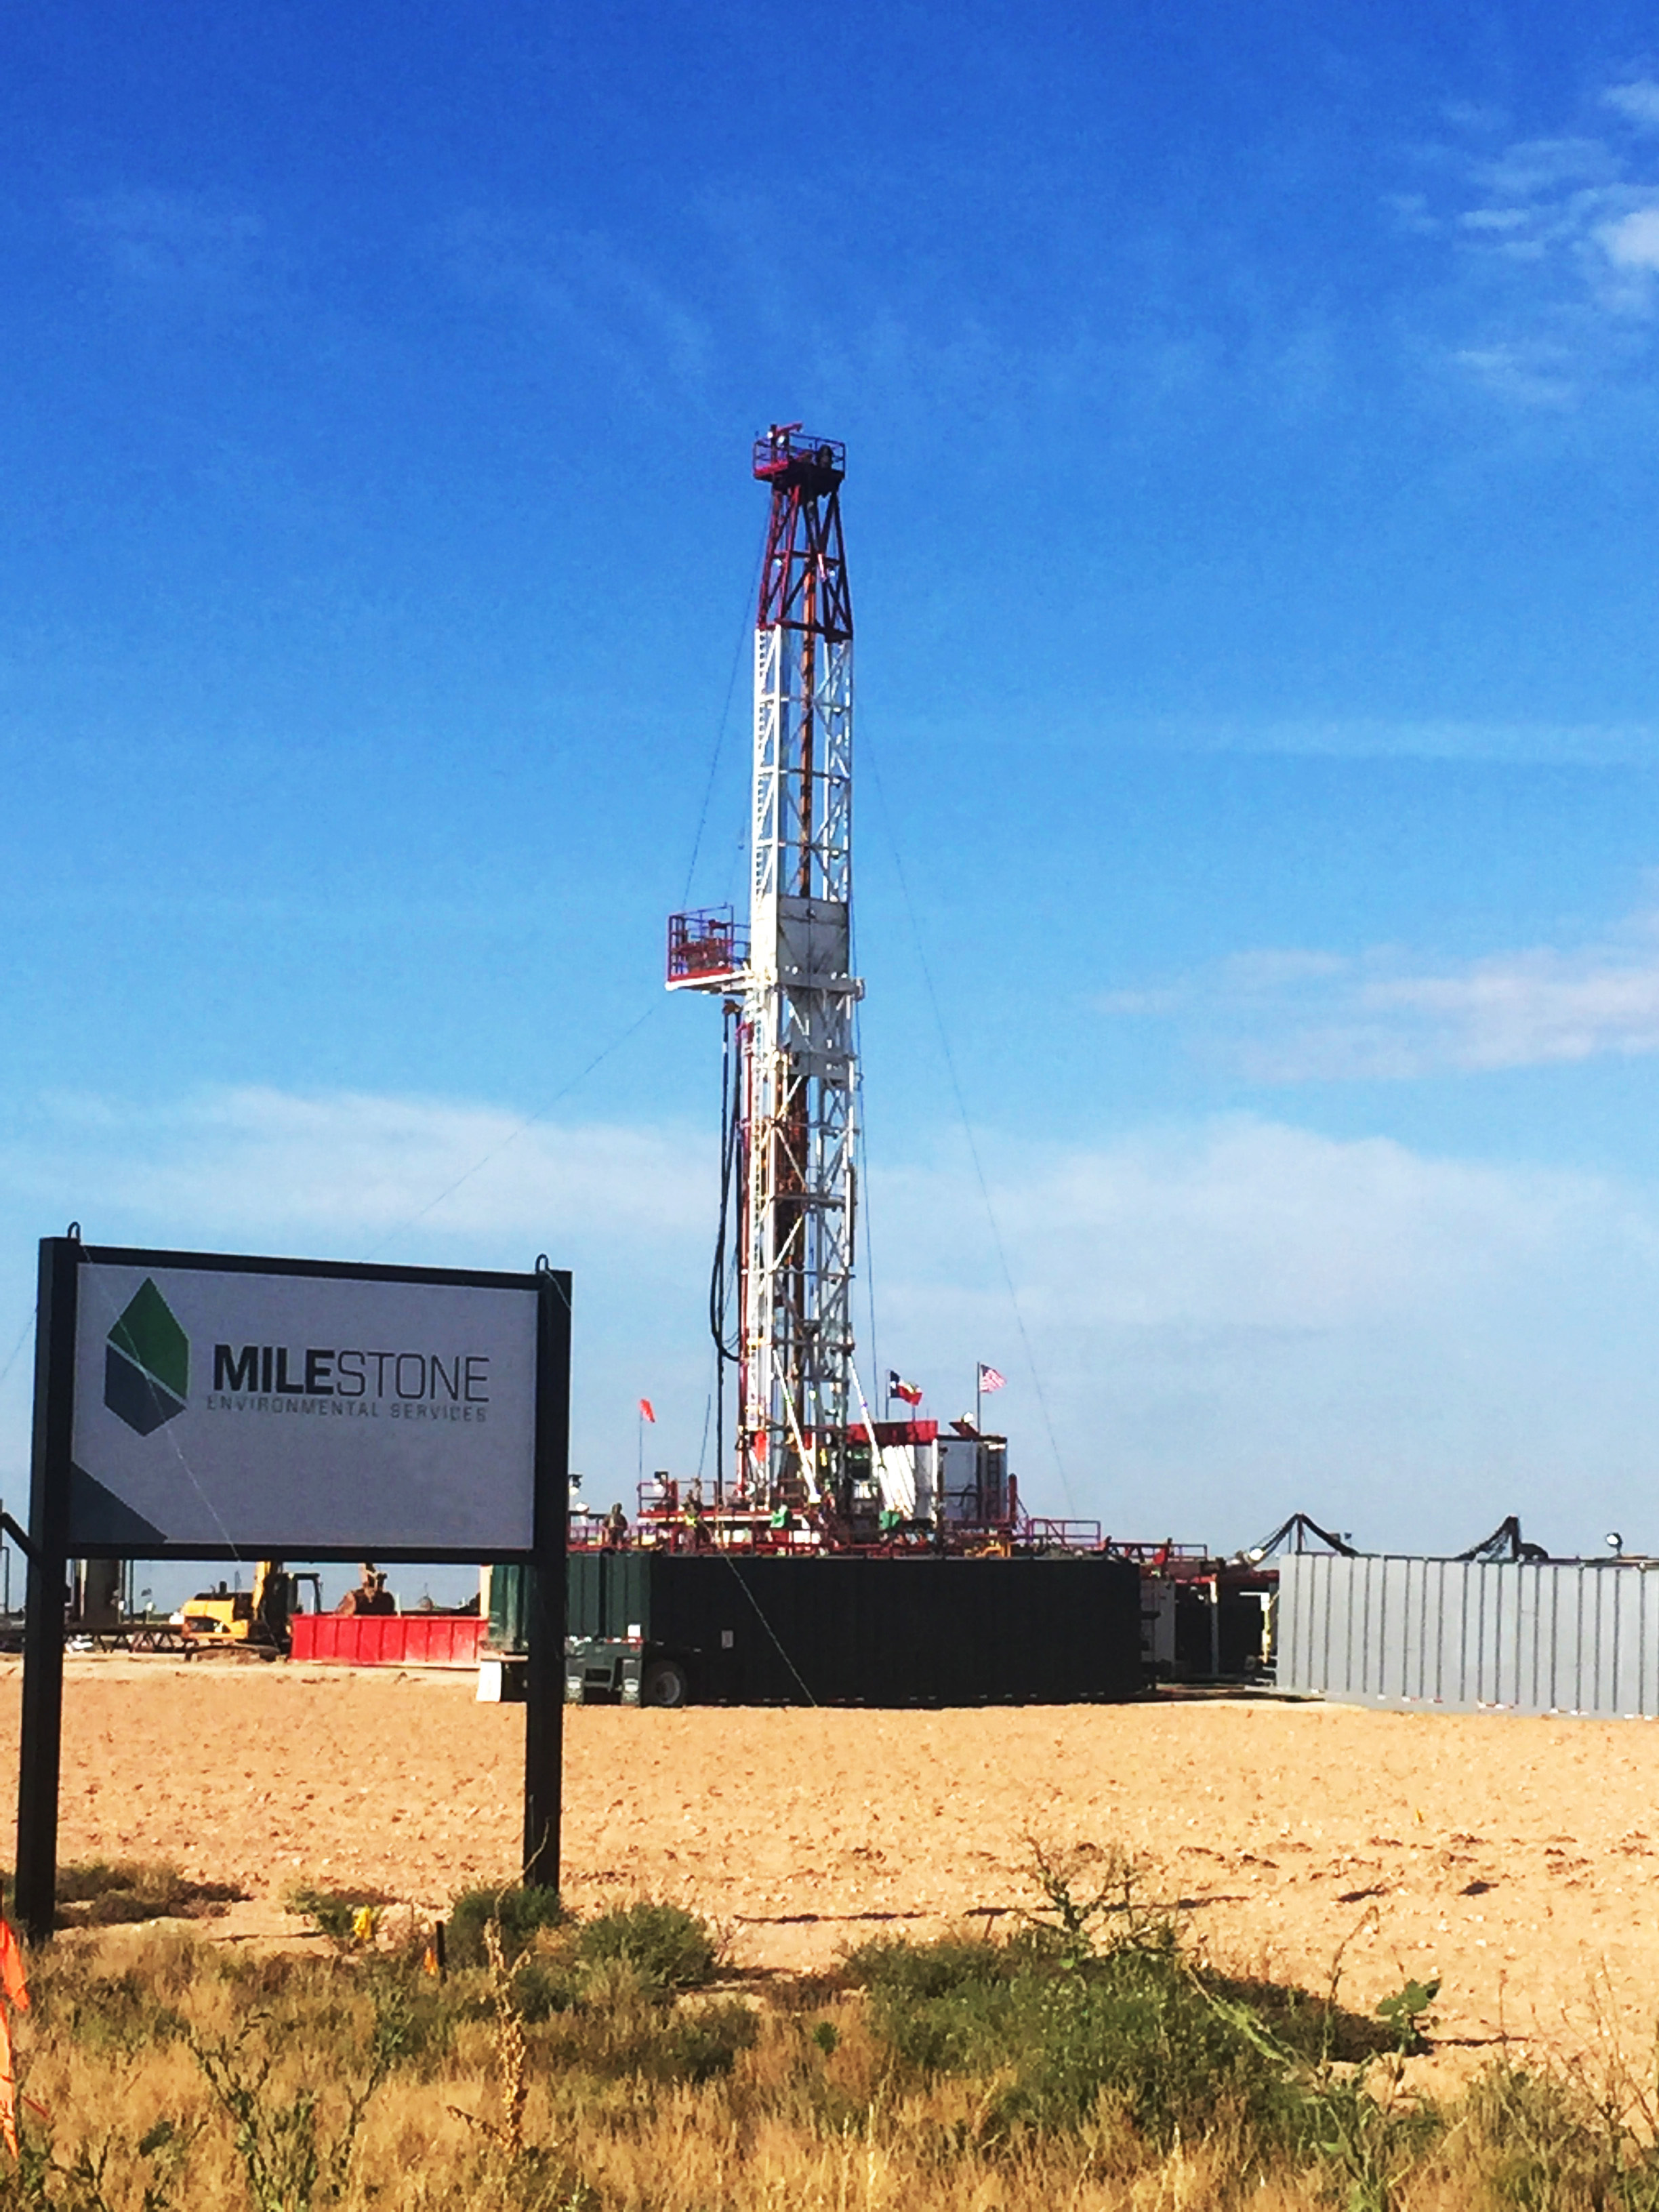 Milestone Environmental Services Expanding in the Permian Basin ...